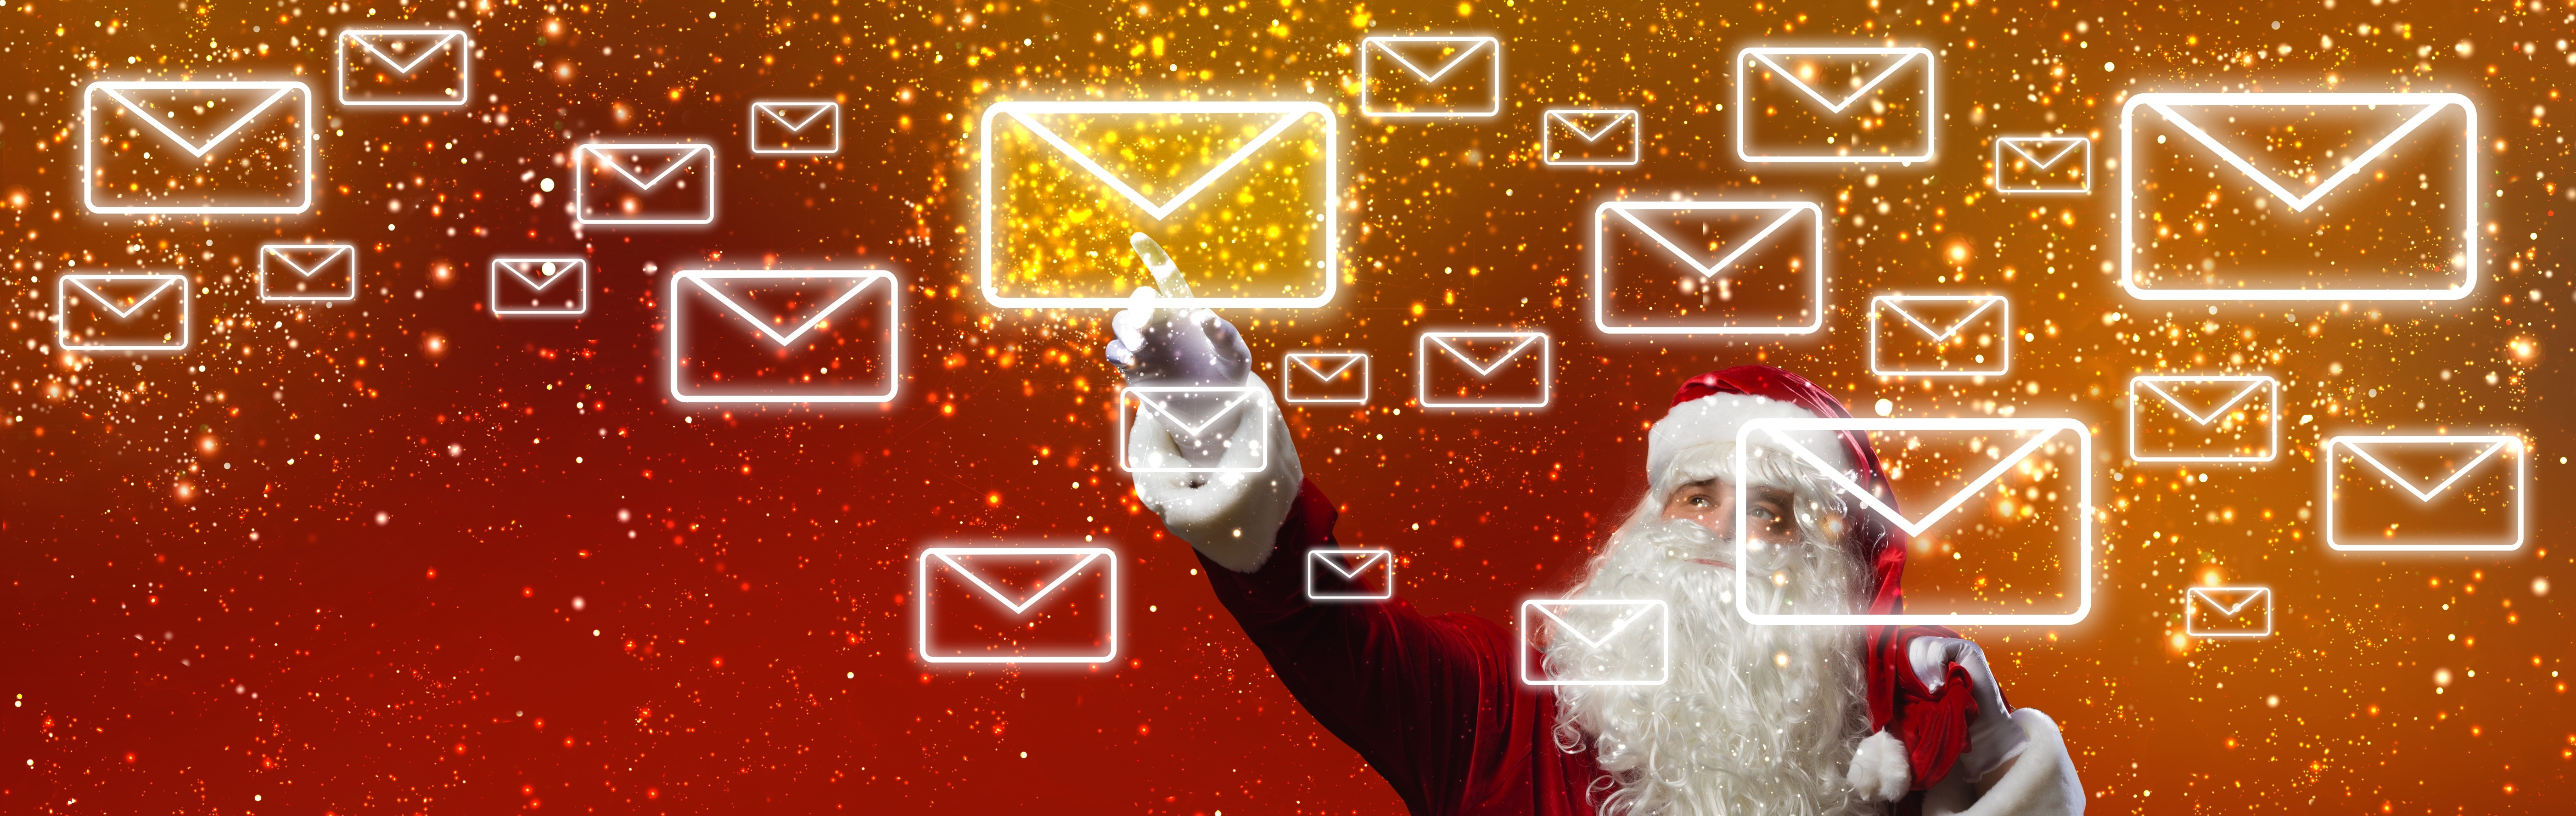 business holiday xmas cards